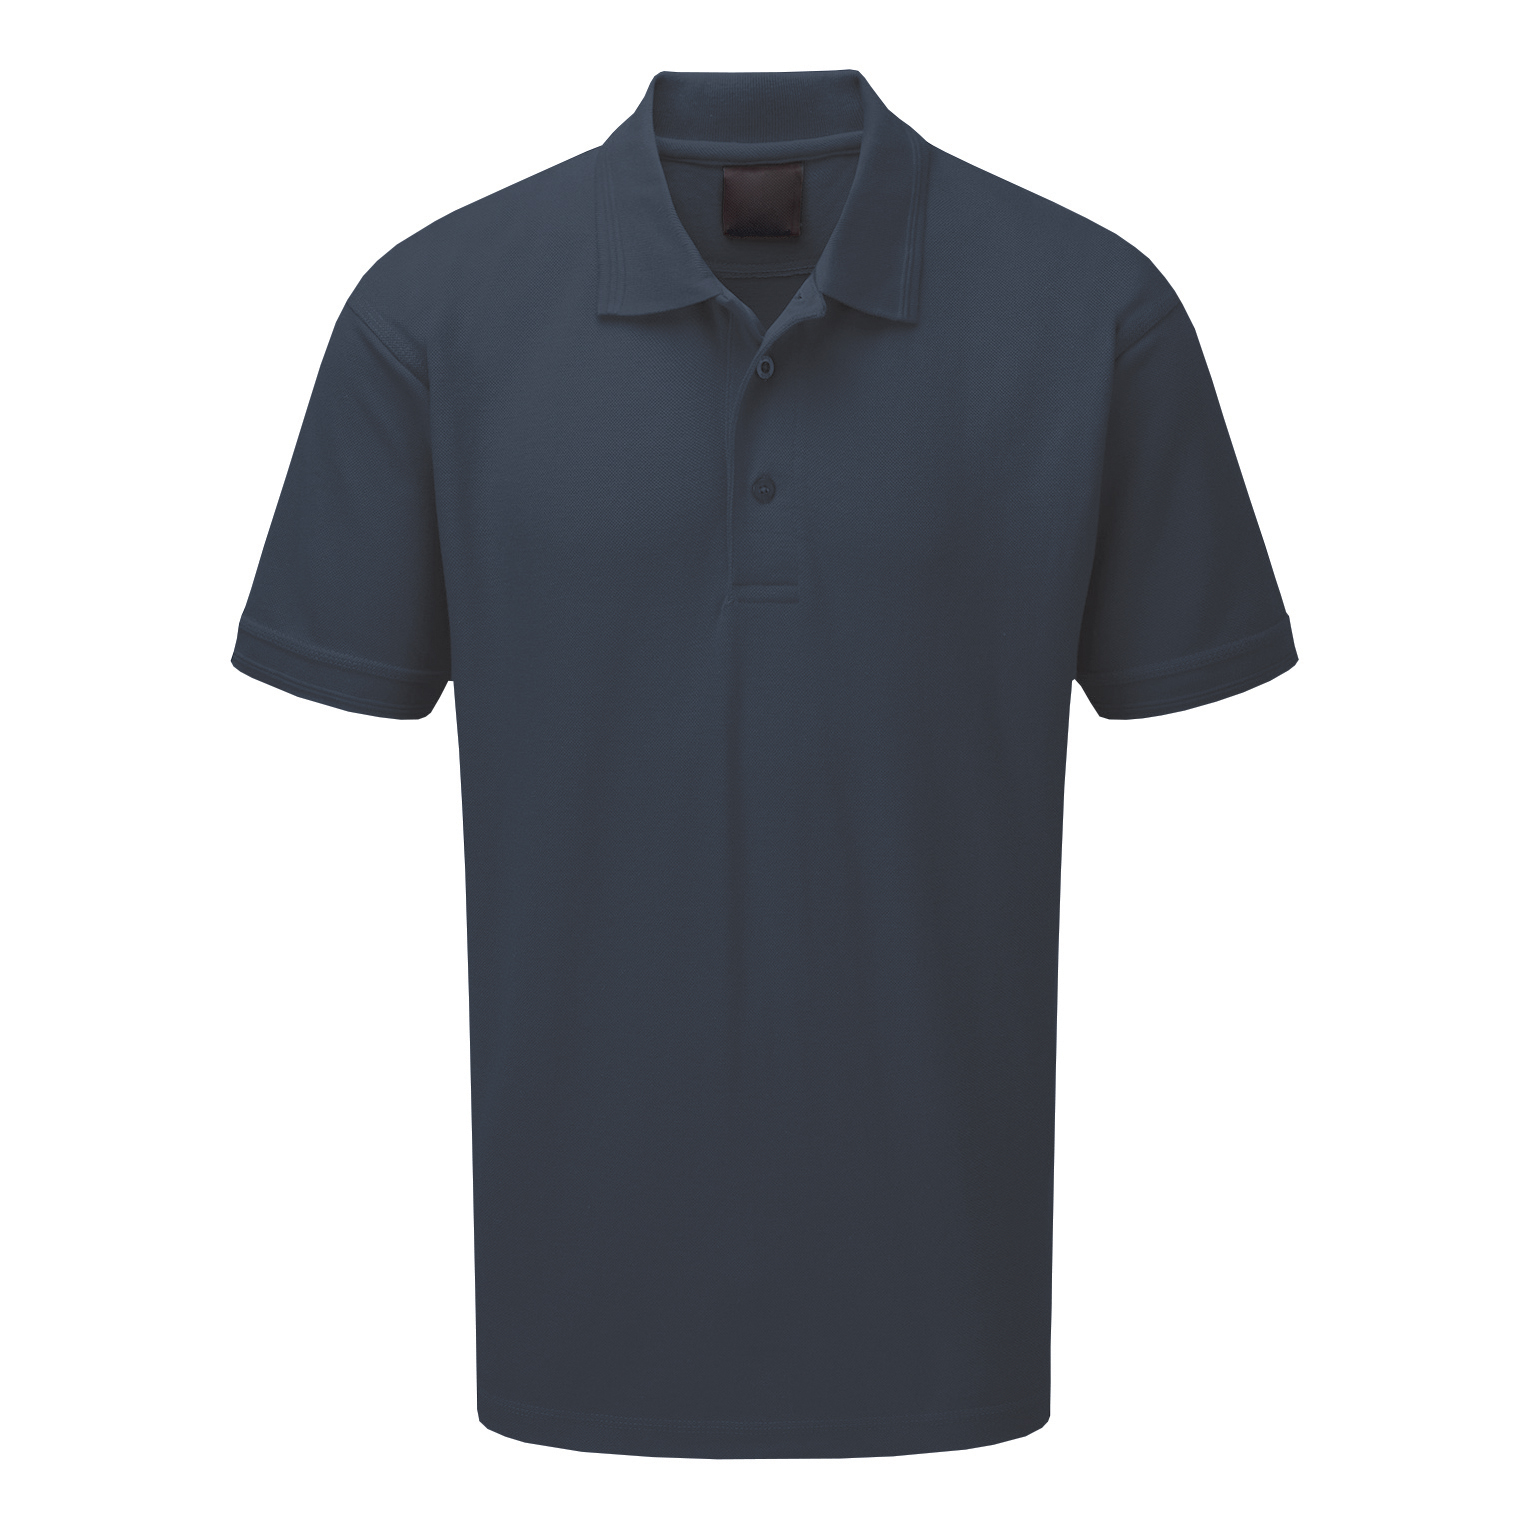 Premium Polo Shirt Triple Button 220gsm Polycotton Large Graphite Ref CLPKSGYL *Approx 3 Day Leadtime*